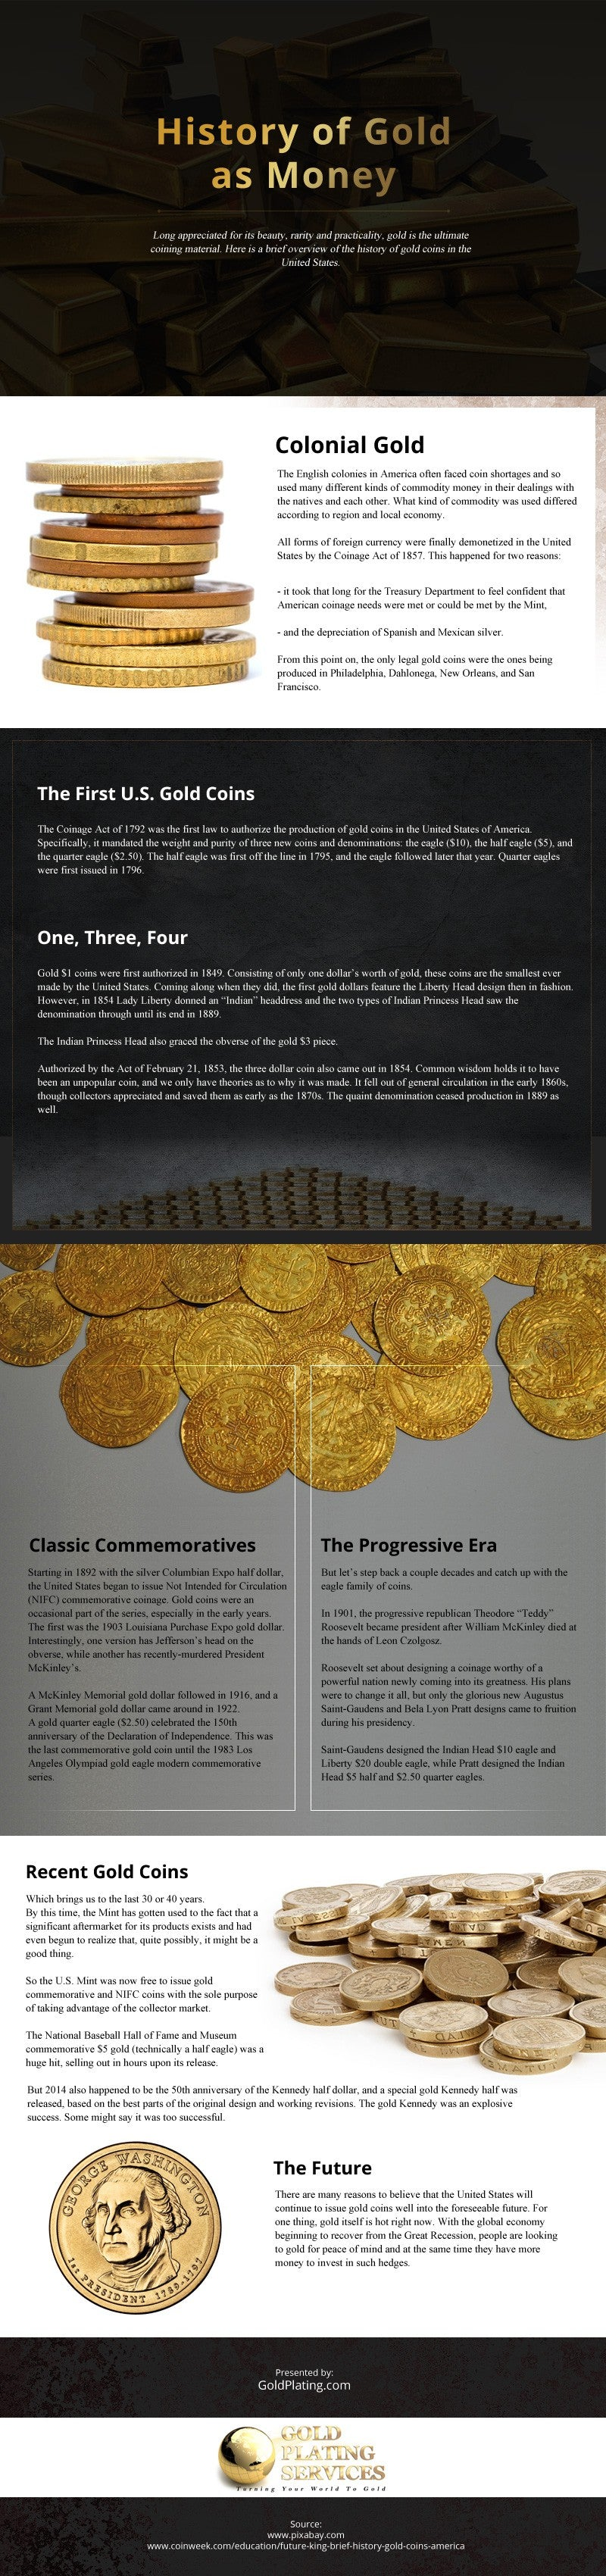 History of Gold as Money [infographic]